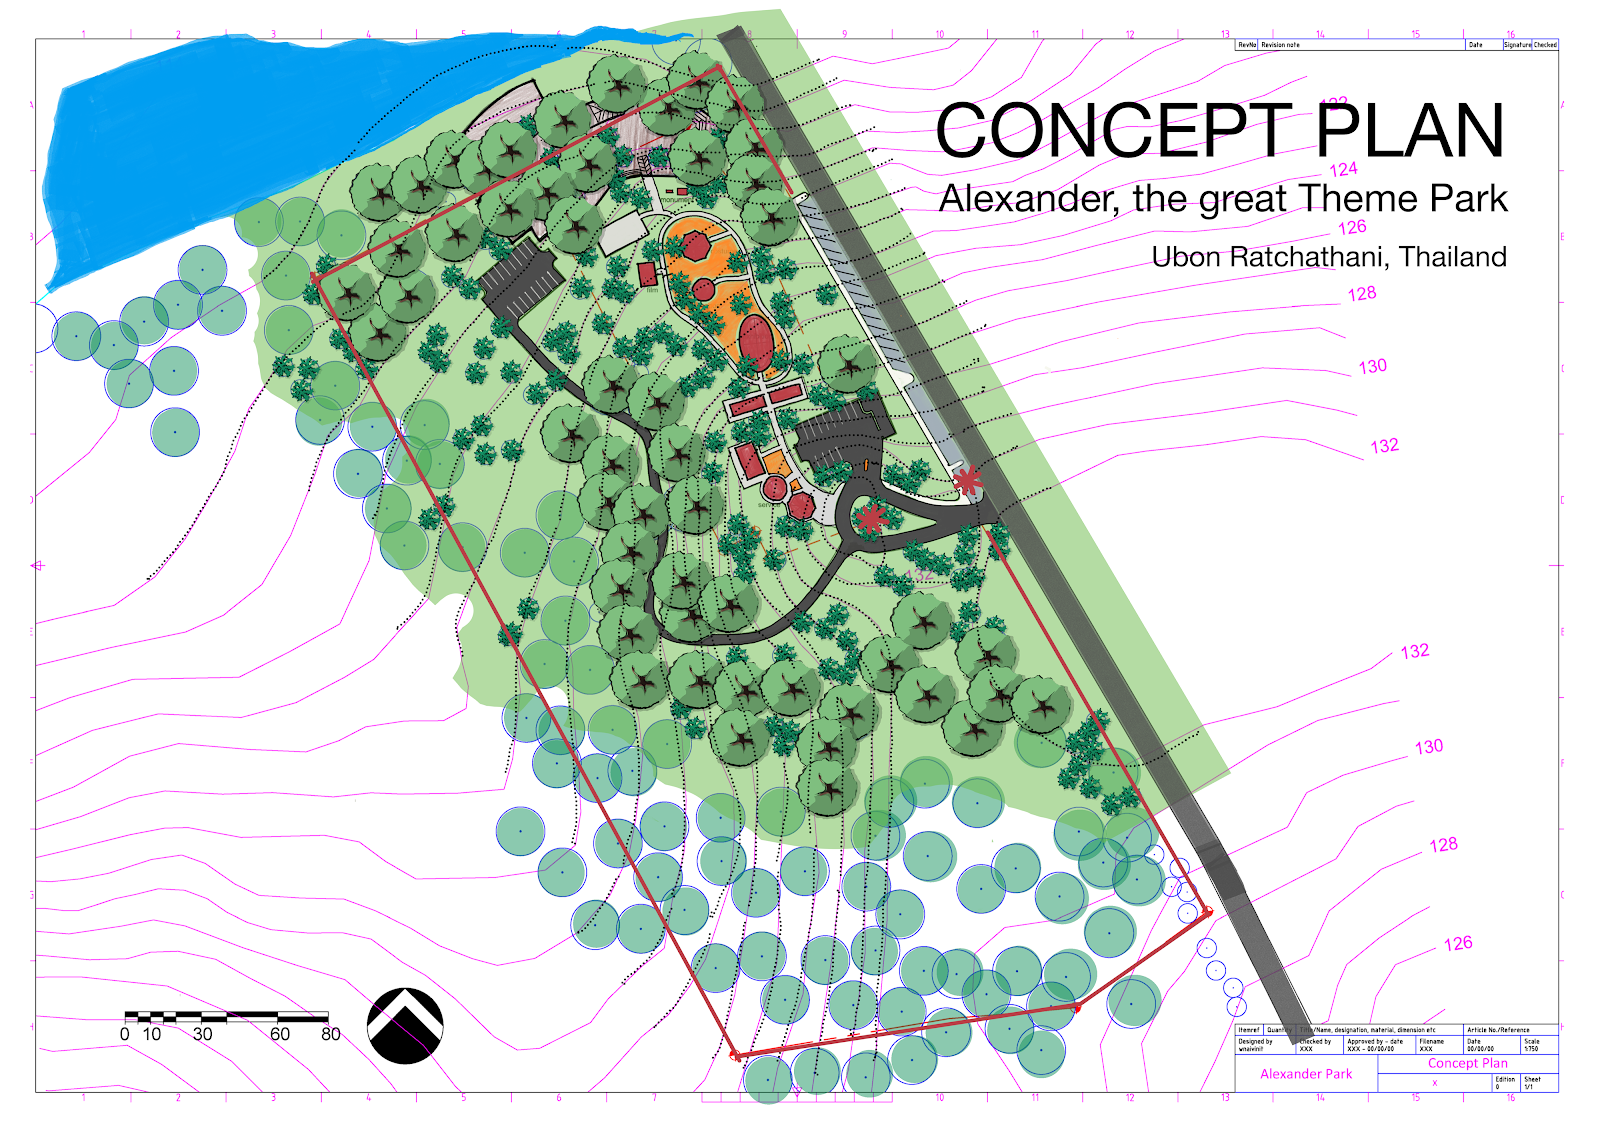 Perfect A Concept Plan For Alexander The Great Theme Park.